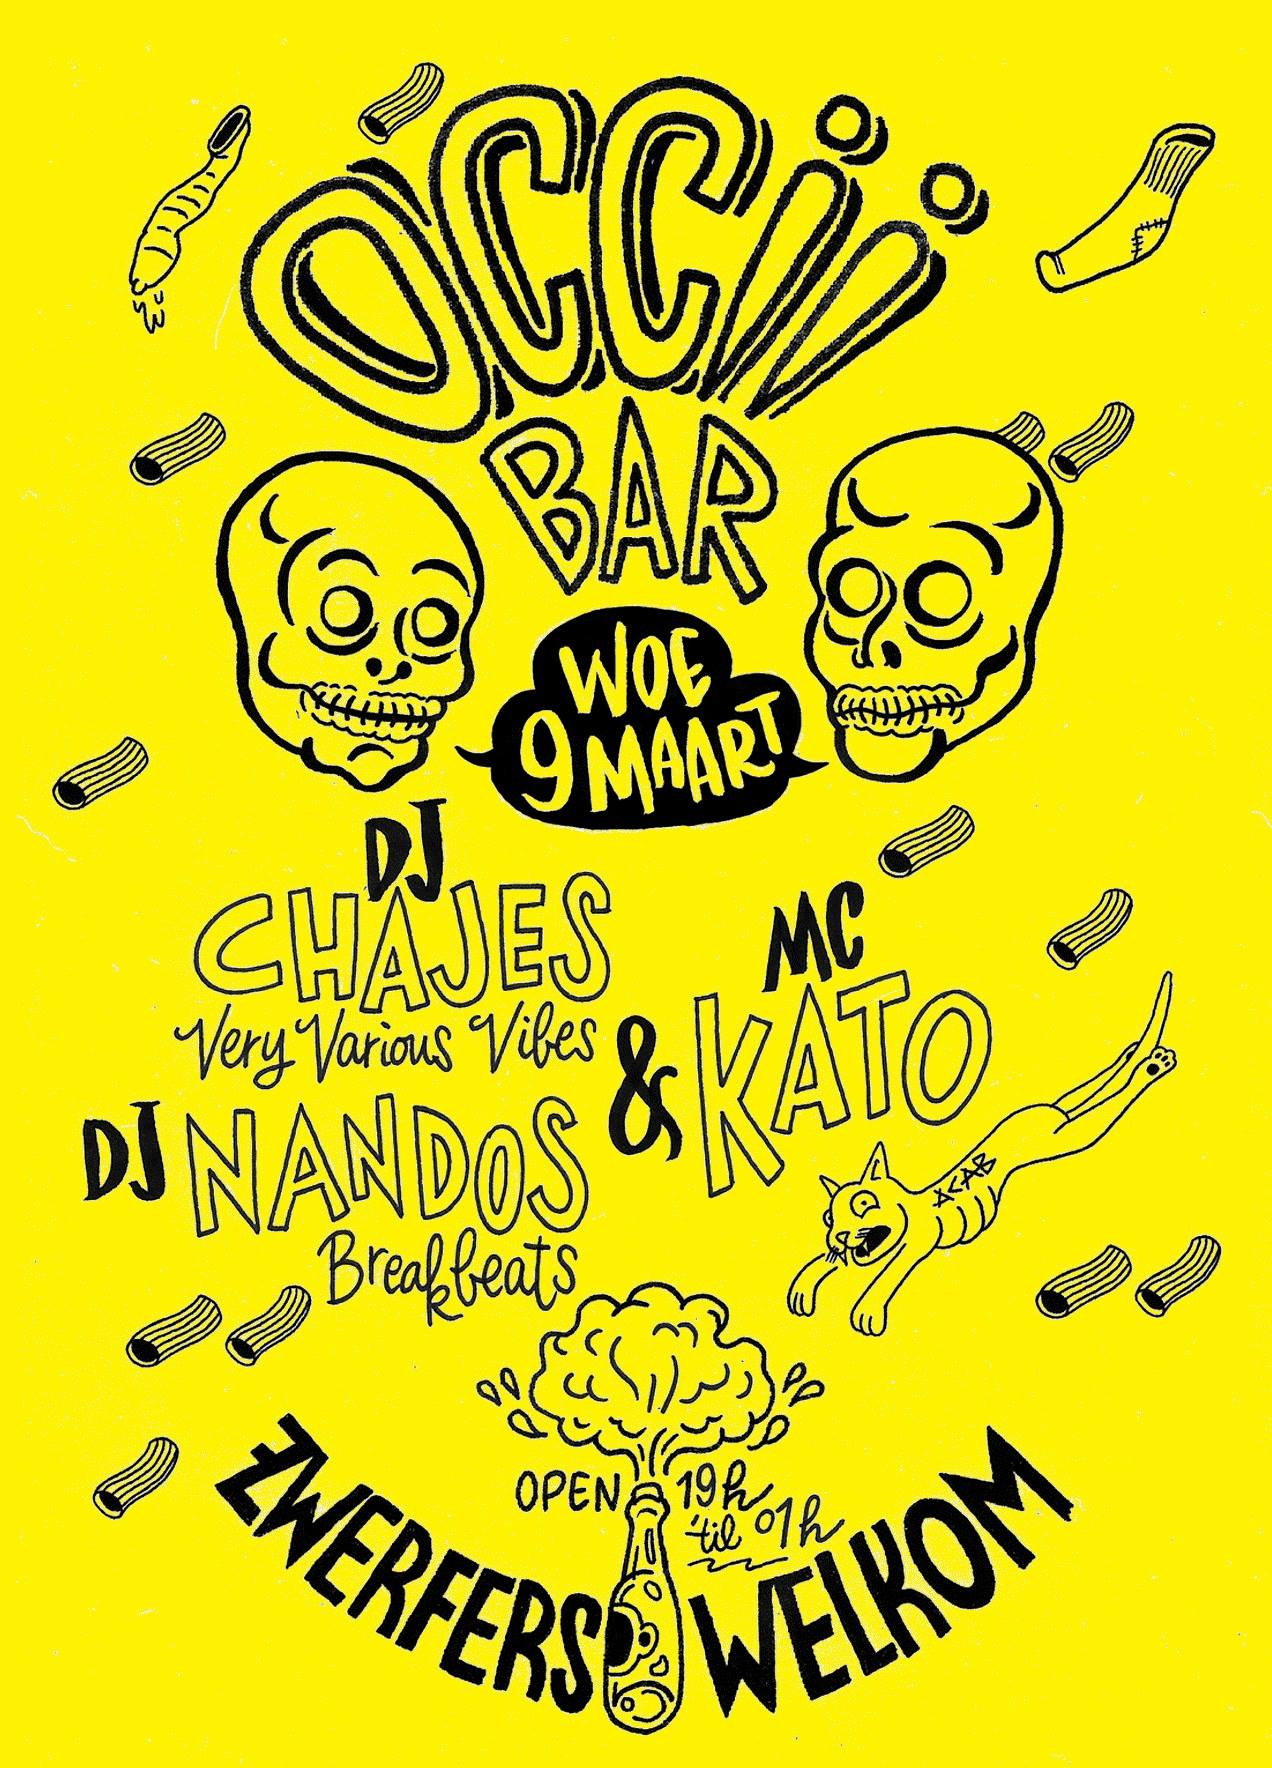 OCCII BAR NIGHT w/ DJ CHAJES + DJ NANDOS & MC KATO